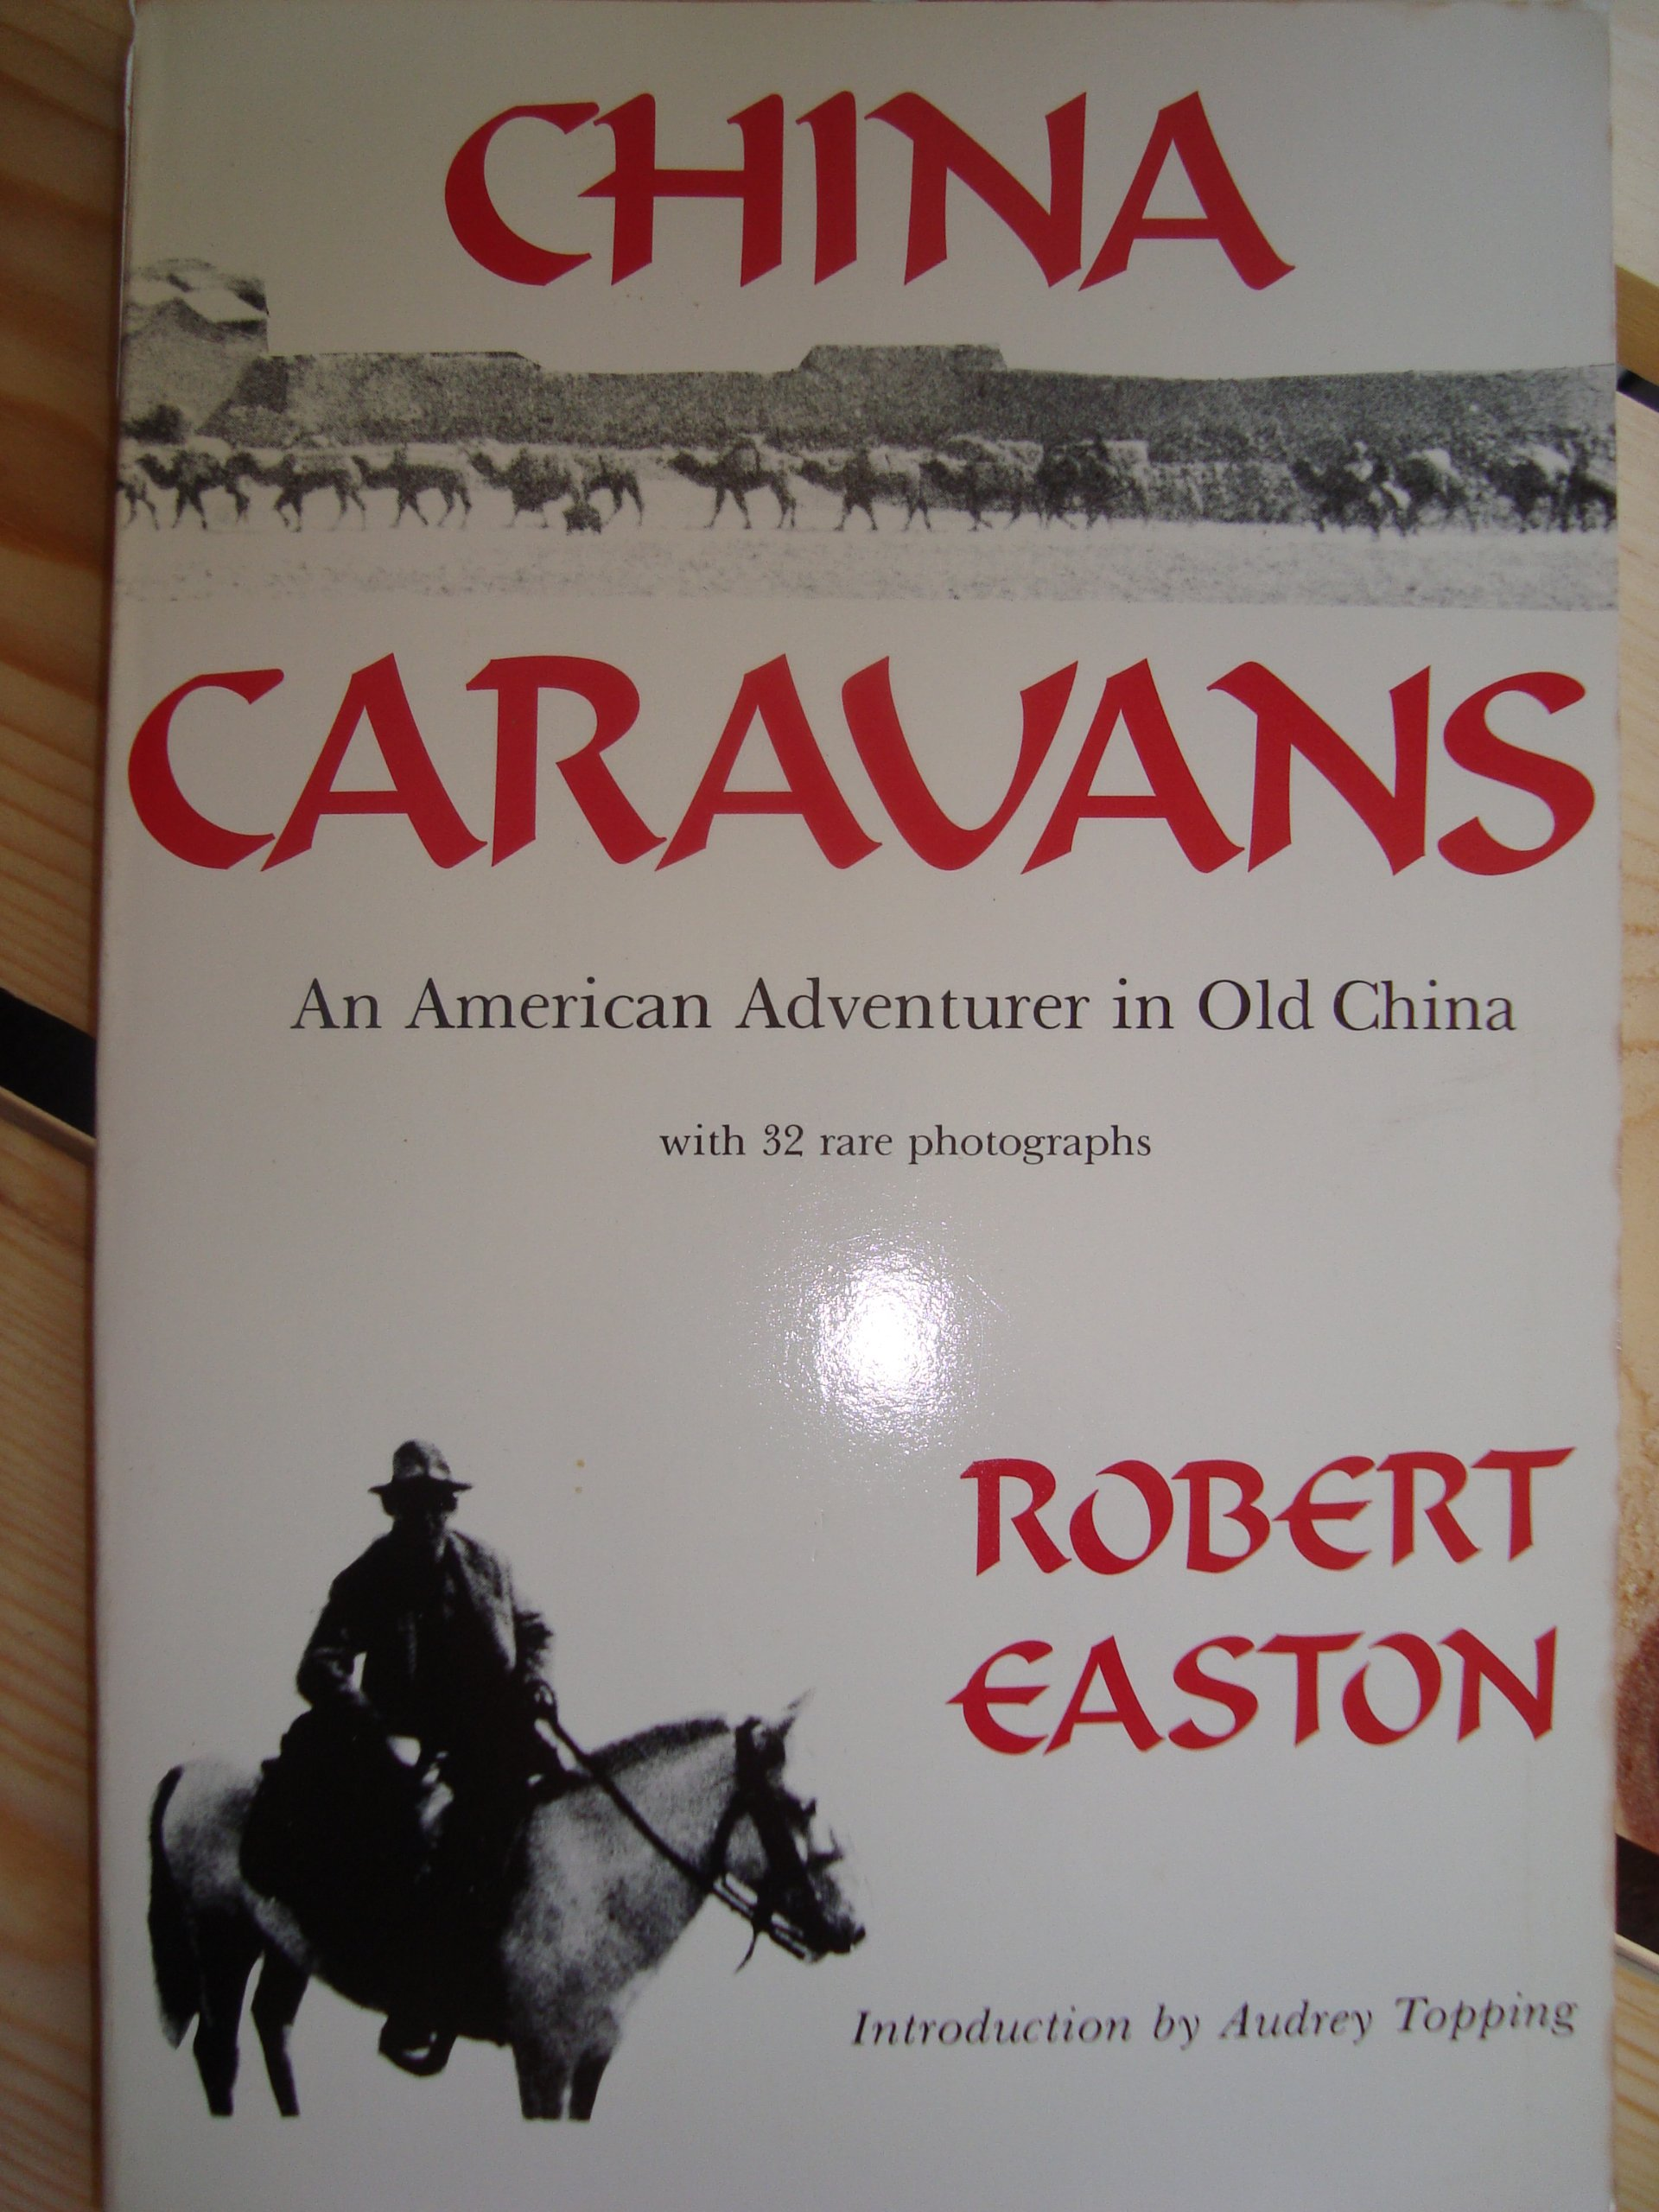 China Caravans: An American Adventurer in Old China : Including an Exploration of the Royal Tombs of Xian and the Ill-Fated Restoration of the Last M